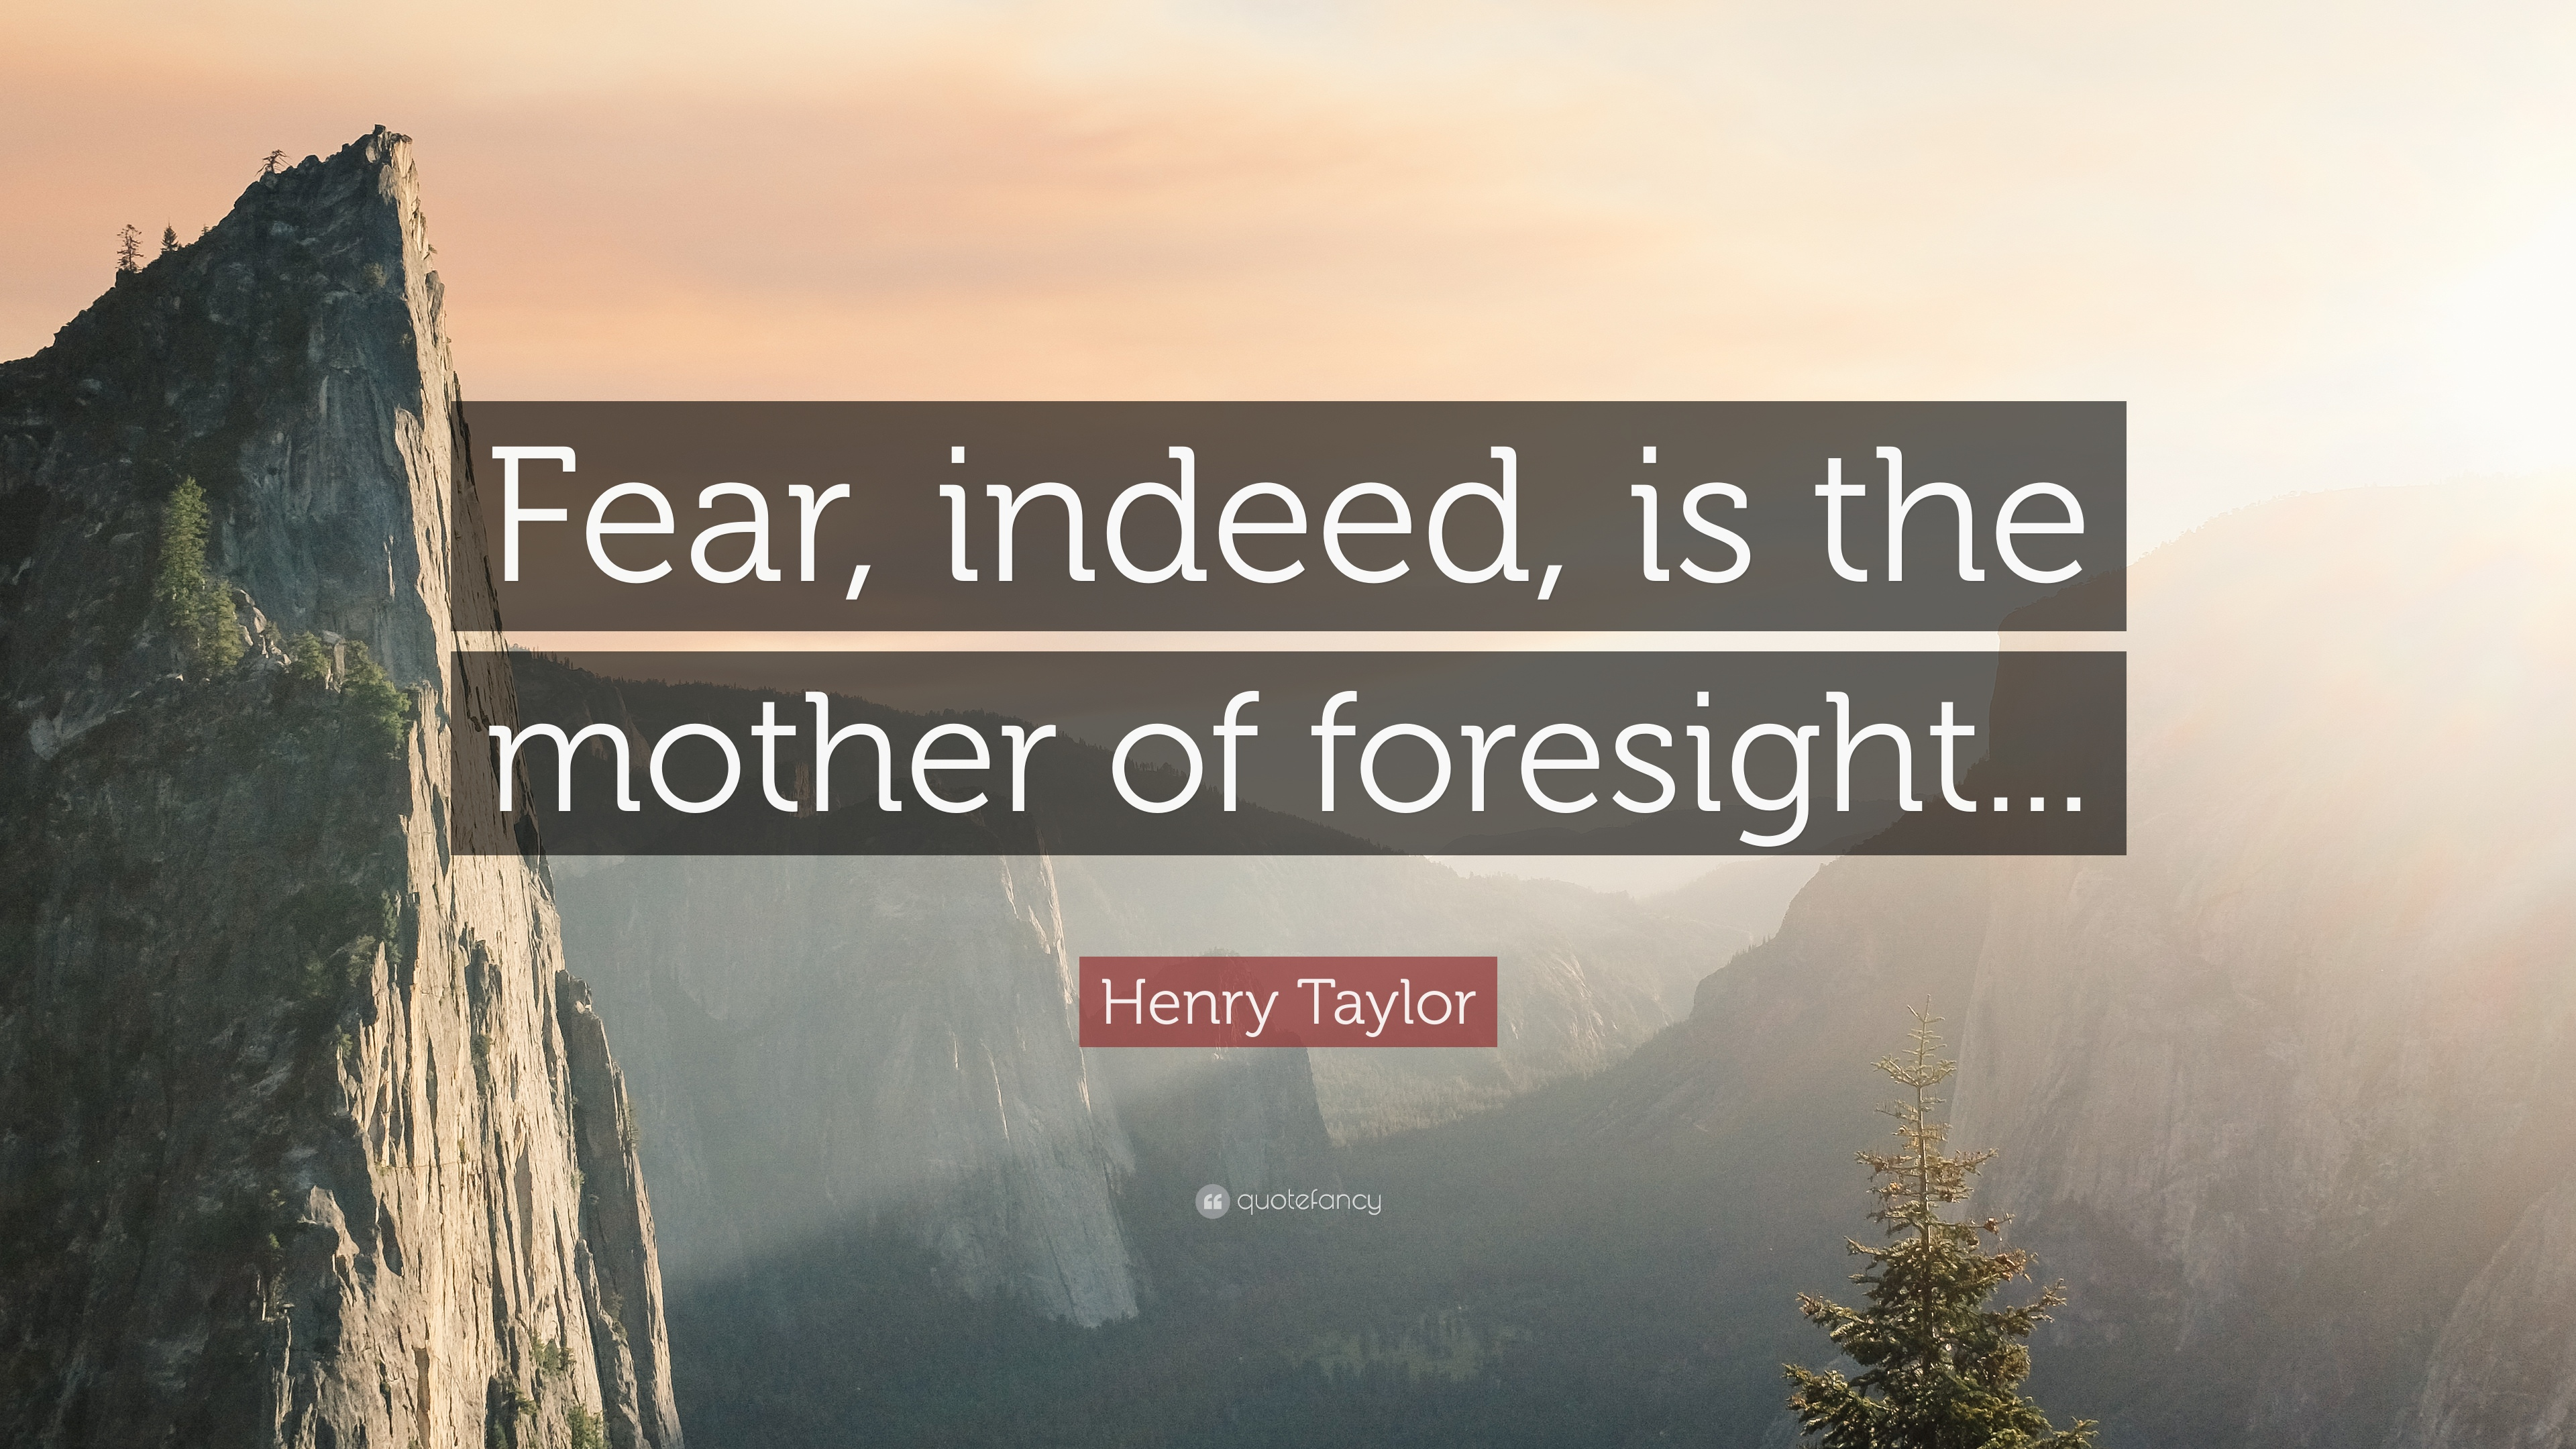 fear and foresight Foresight quotes from yourdictionary: the exploits of your leaders in many a historic field of battle  fear, indeed, is the mother of foresight.